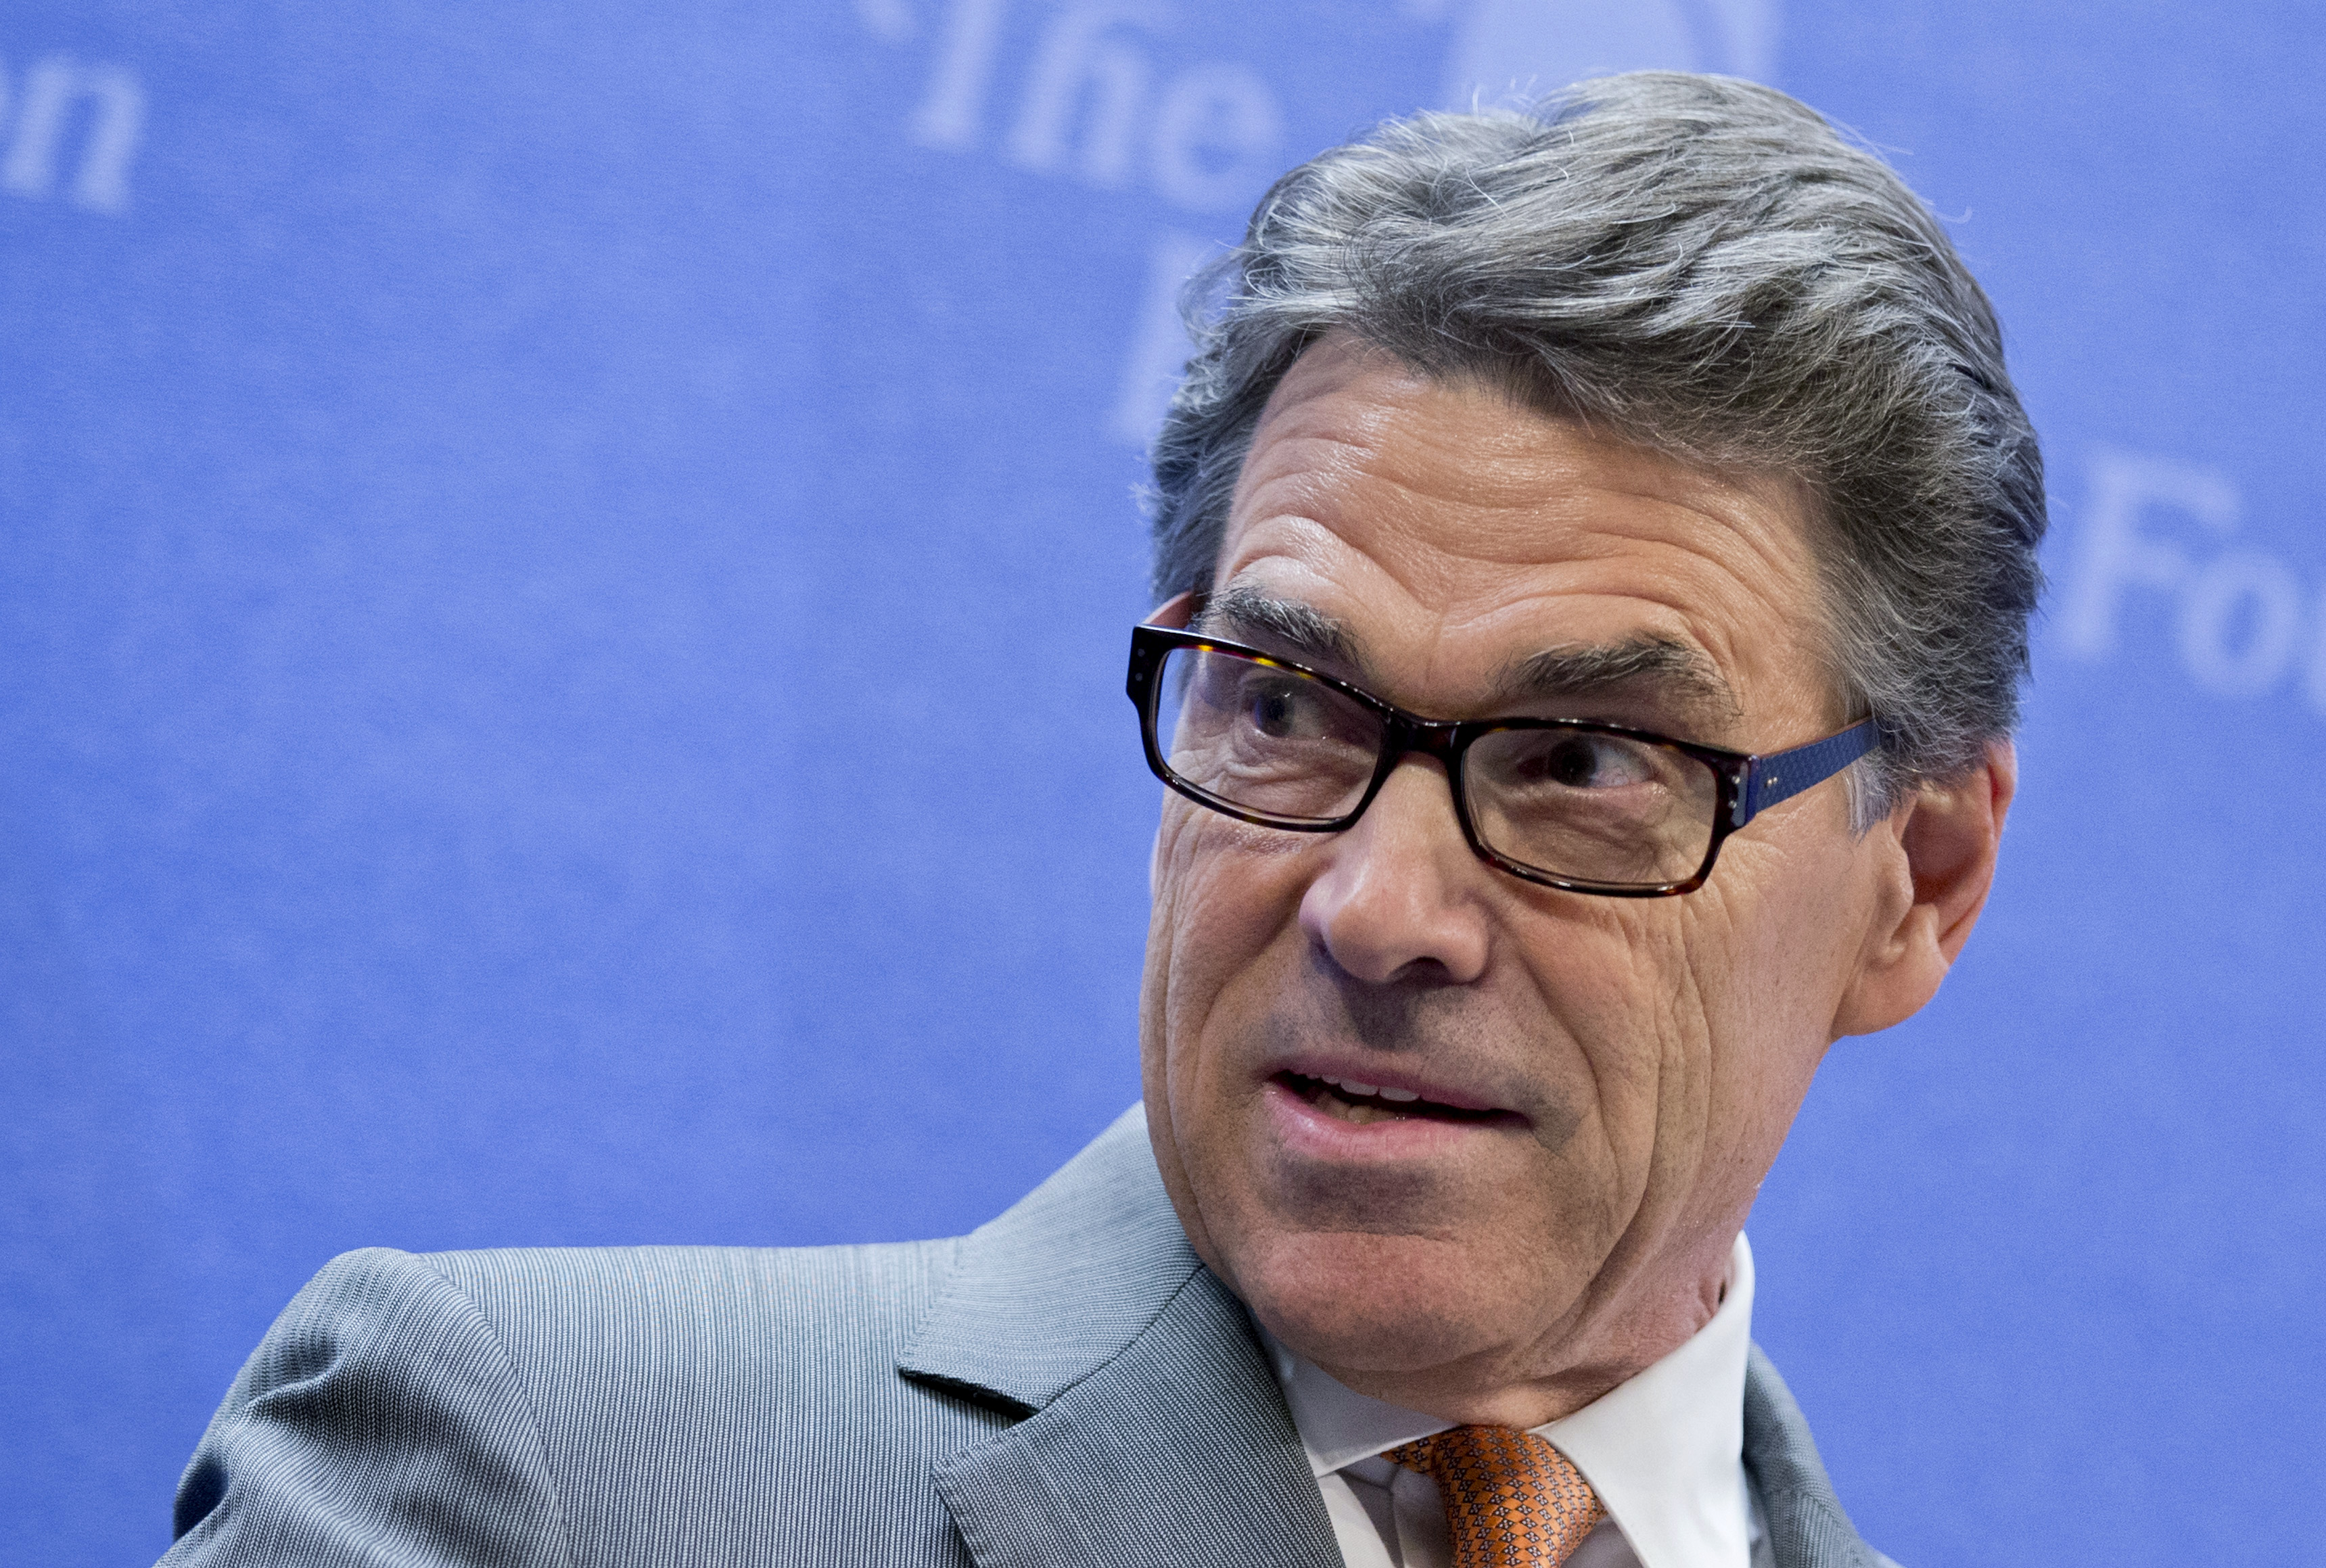 Texas Gov. Rick Perry speaks at the Heritage Foundation in Washington.